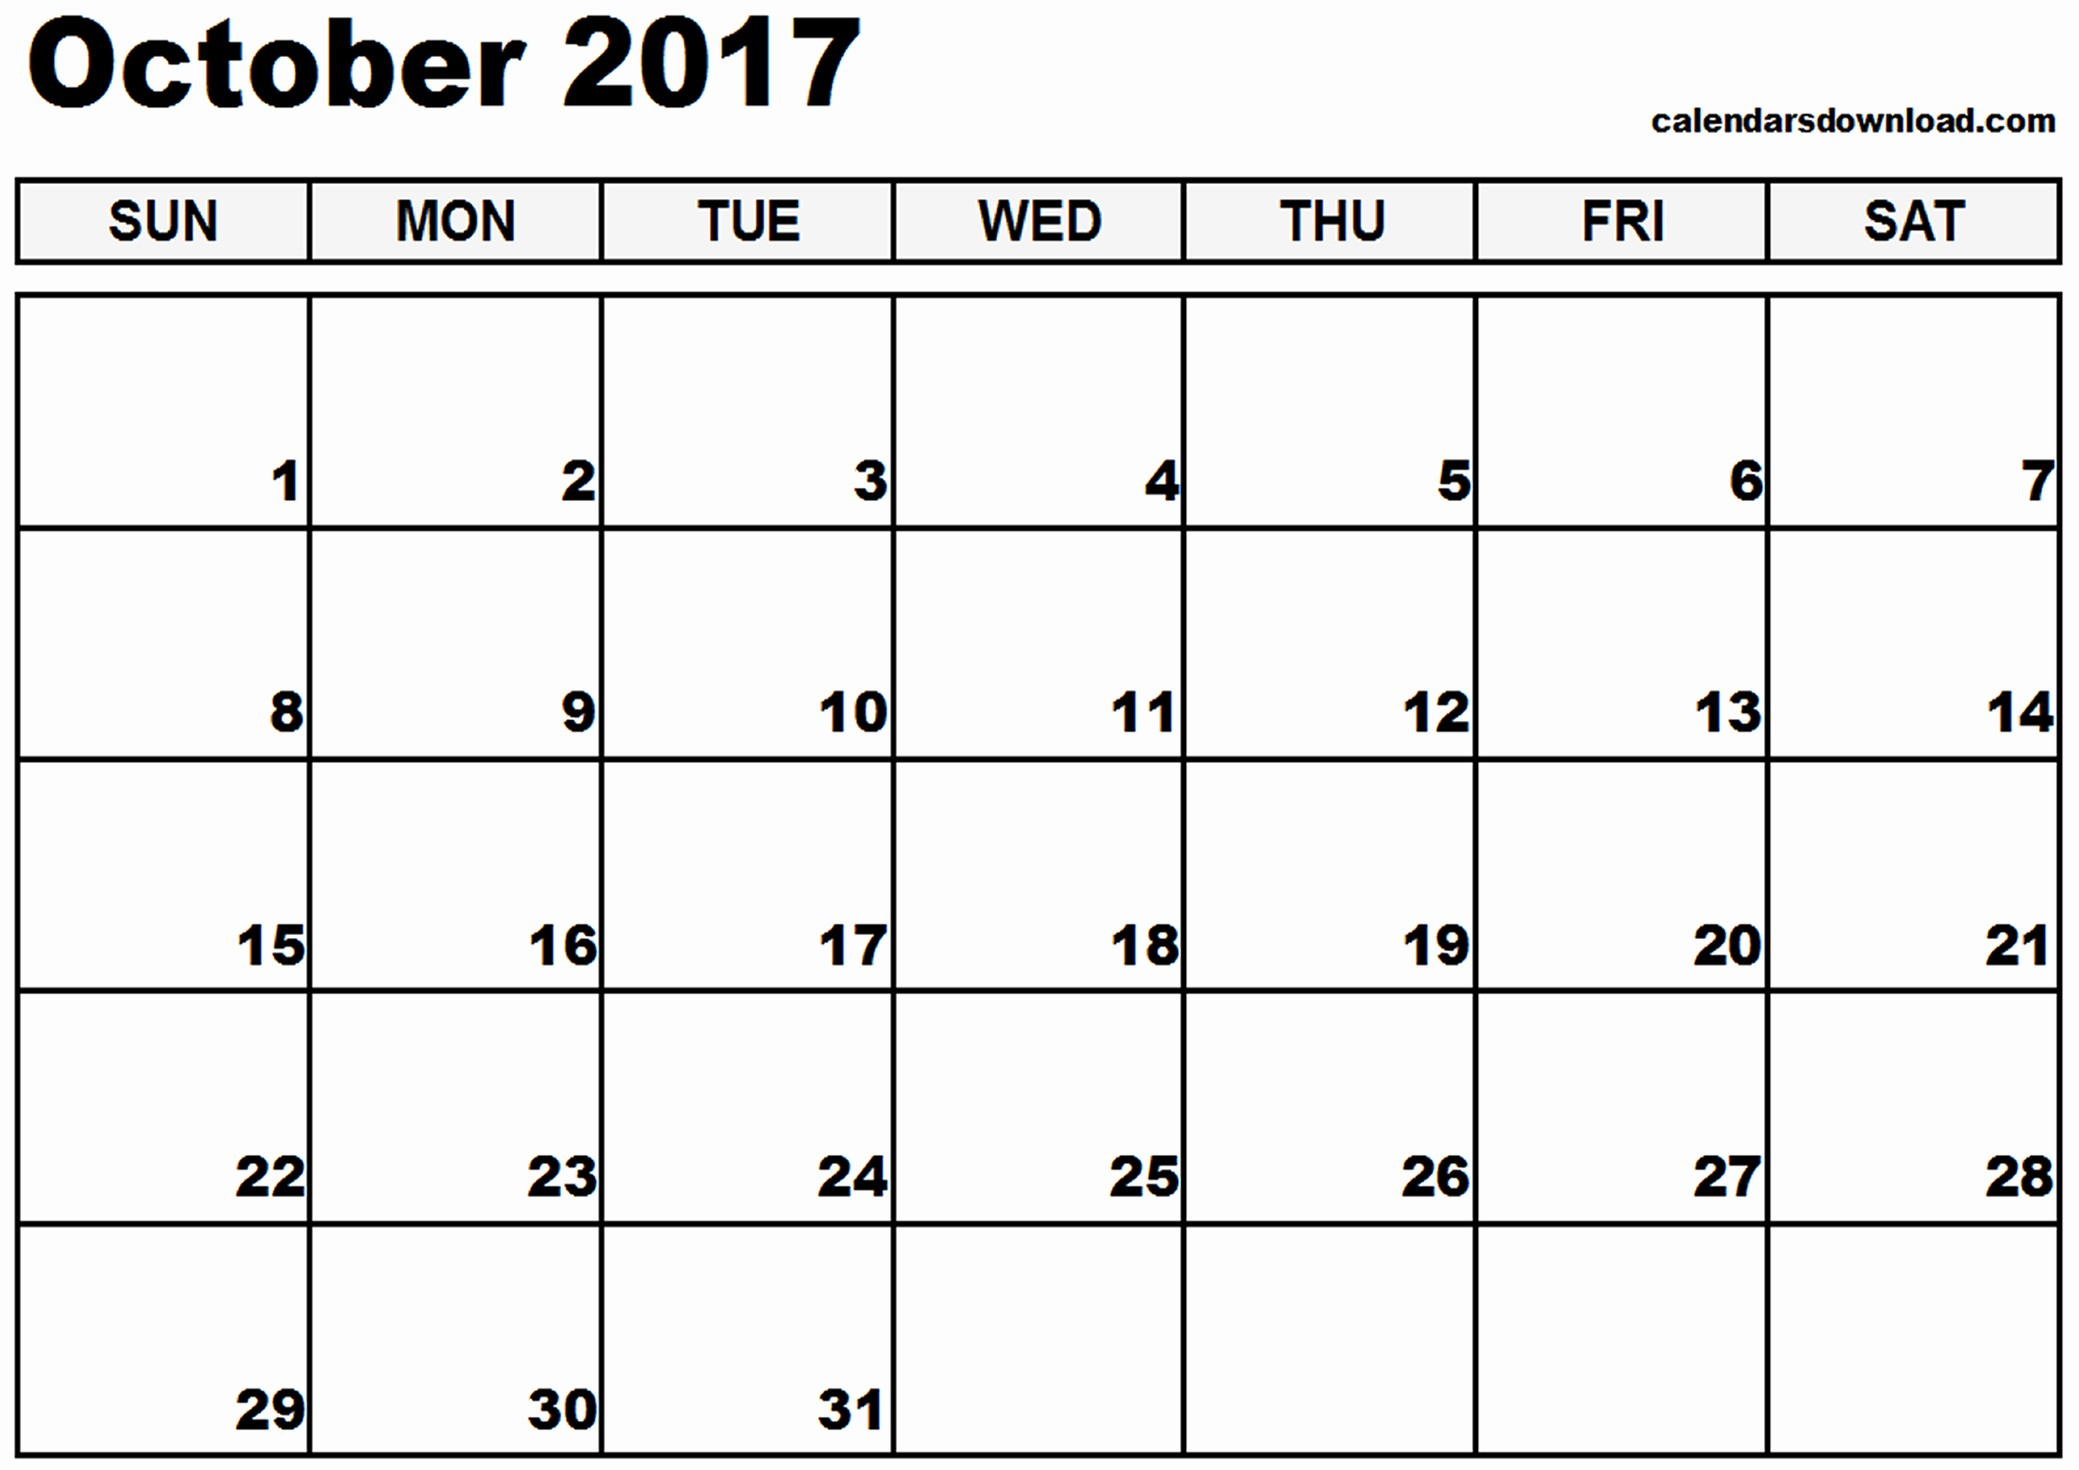 Blank Calendar Template August 2017 Best Of Blank October 2017 Calendar